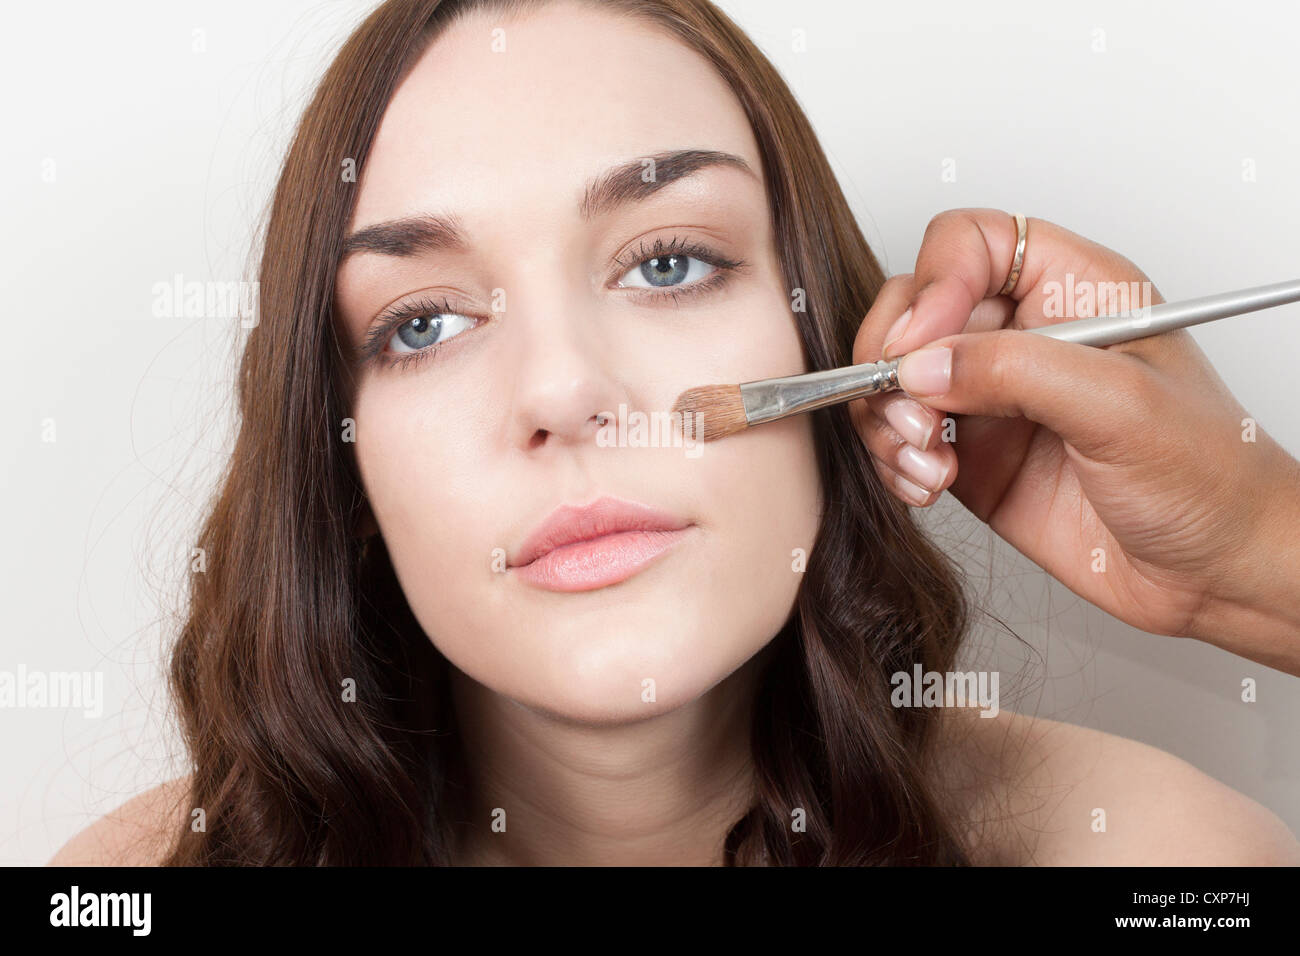 Woman having makeup applied by a make up artist - Stock Image